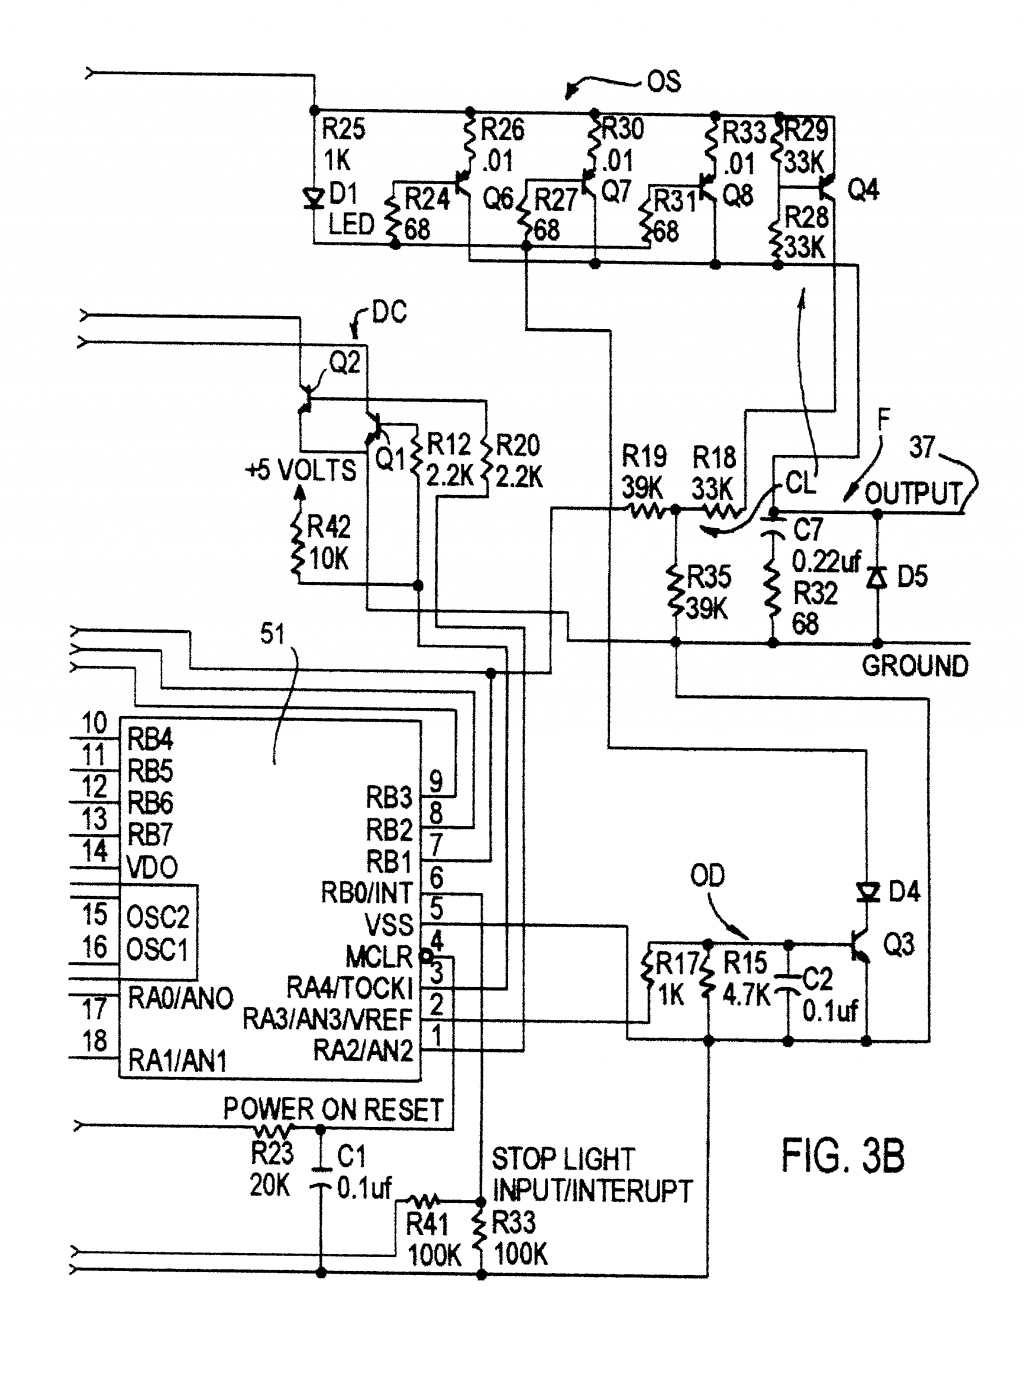 Tekonsha Sentinel Ke Controller Wiring Diagram Website Of - Wiring on toyota alternator wiring, toyota wiring color codes, toyota flasher relay, toyota ignition diagram, toyota diagrams online, toyota shop manual, toyota cylinder head, toyota maintenance schedule, toyota 22re vacuum line diagram, toyota ecu reset, toyota wiring manual, toyota wiring harness, toyota headlight wiring, toyota electrical diagrams, toyota schematic diagrams, toyota parts diagrams, toyota shock absorber replacement, toyota truck diagrams, toyota cooling system diagram, toyota headlight adjustment,